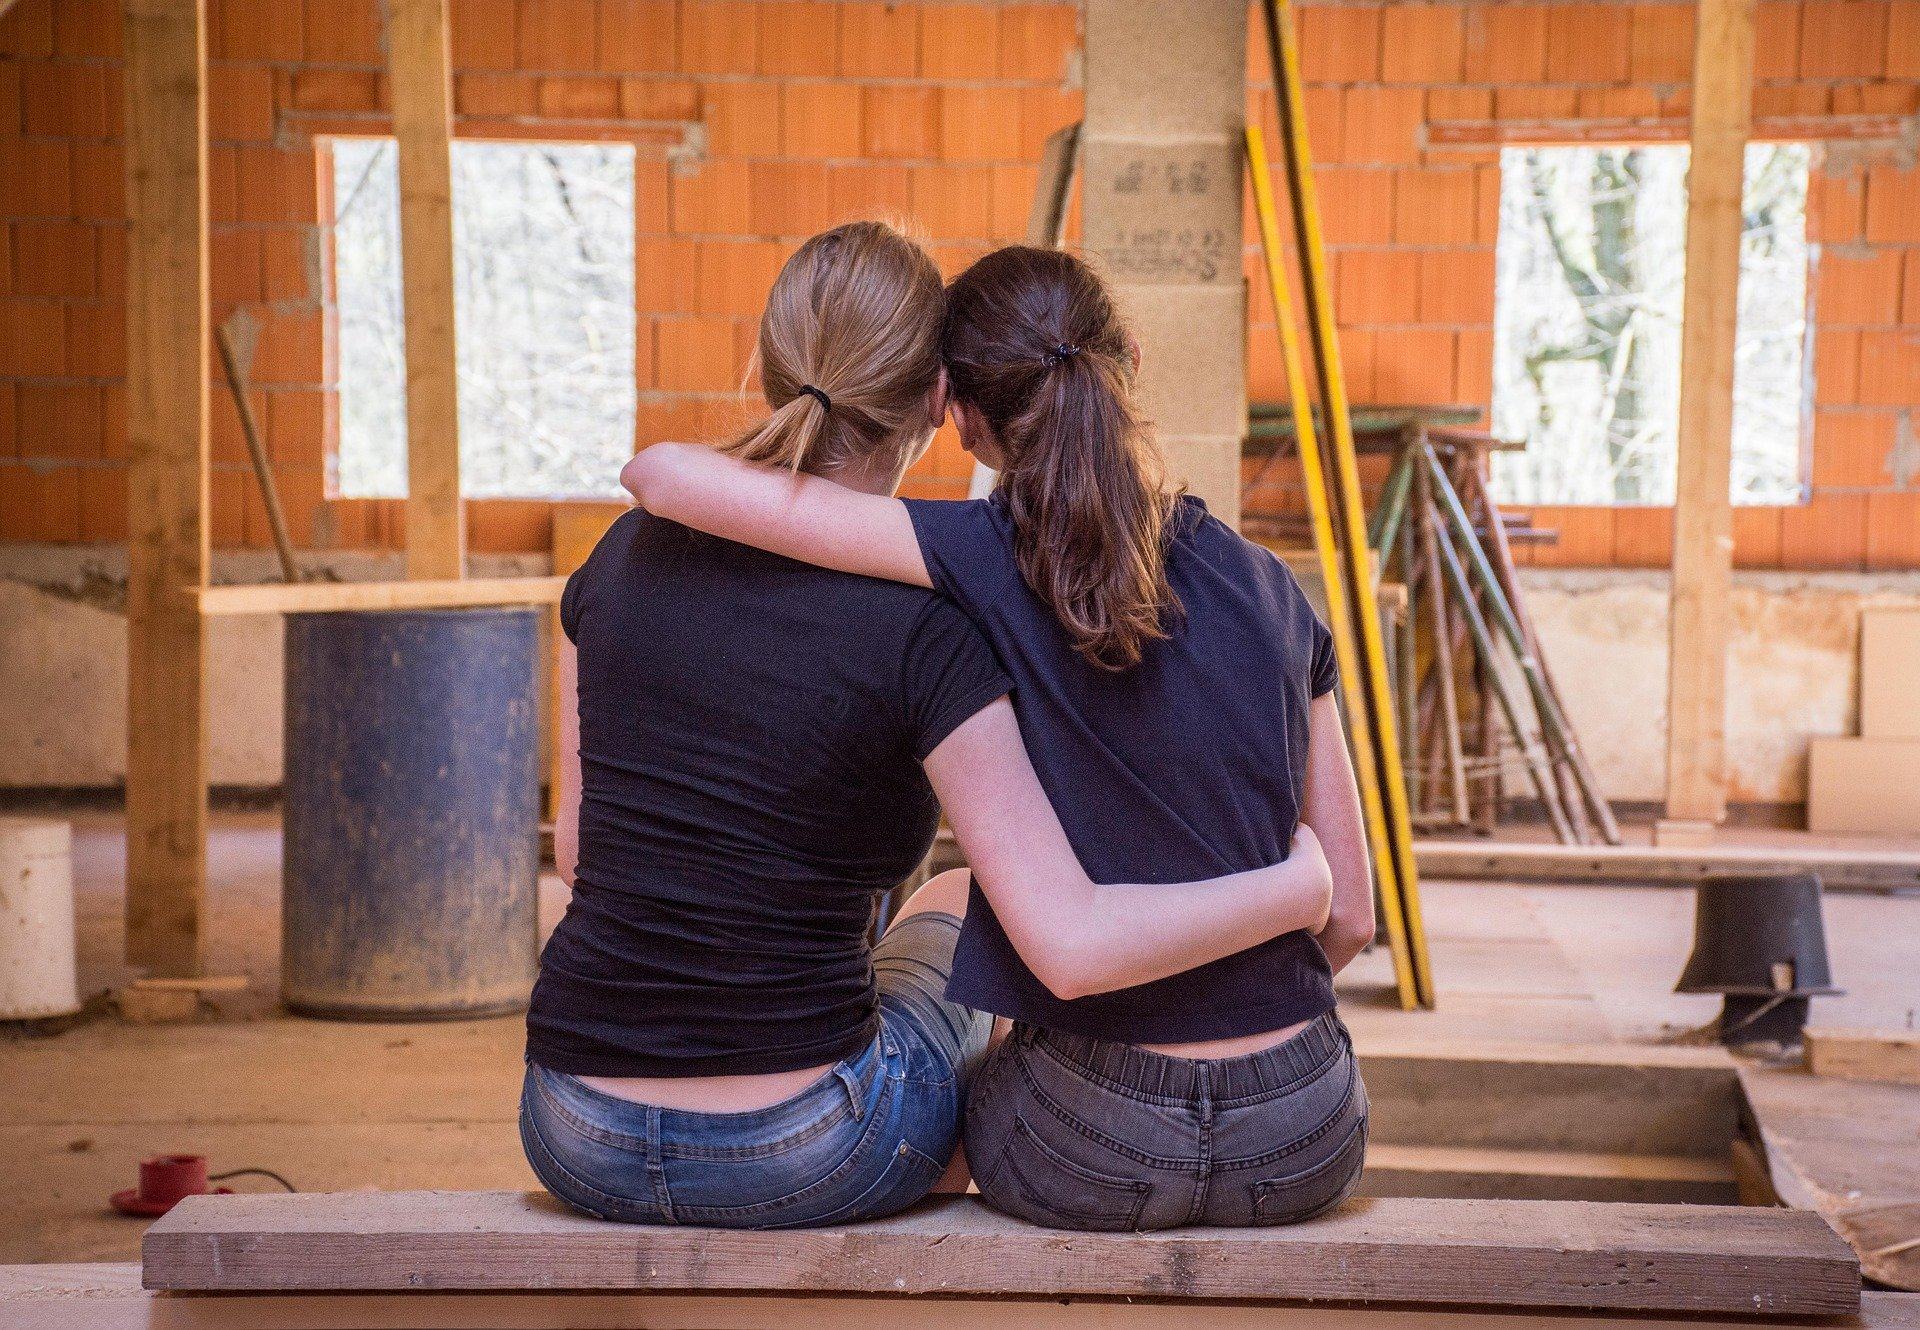 Now is the time to renovate your house